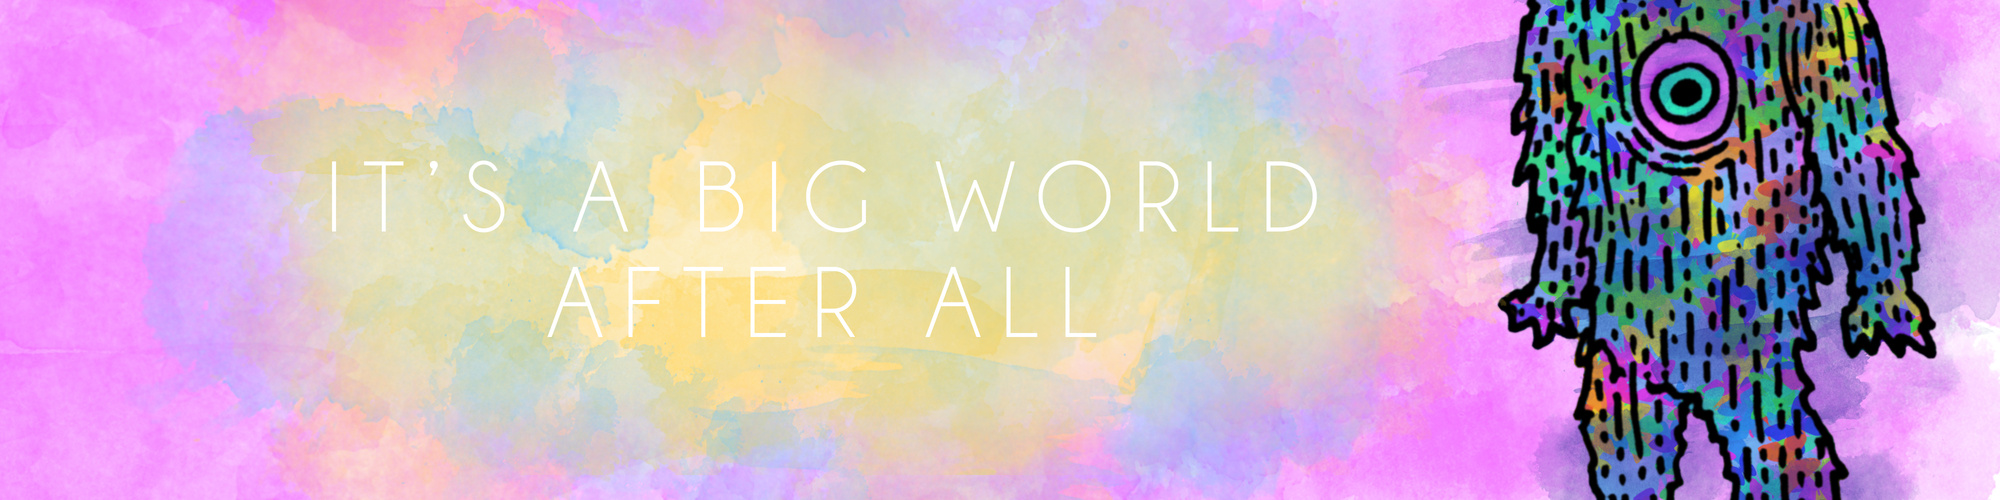 It's a big world header.jpg